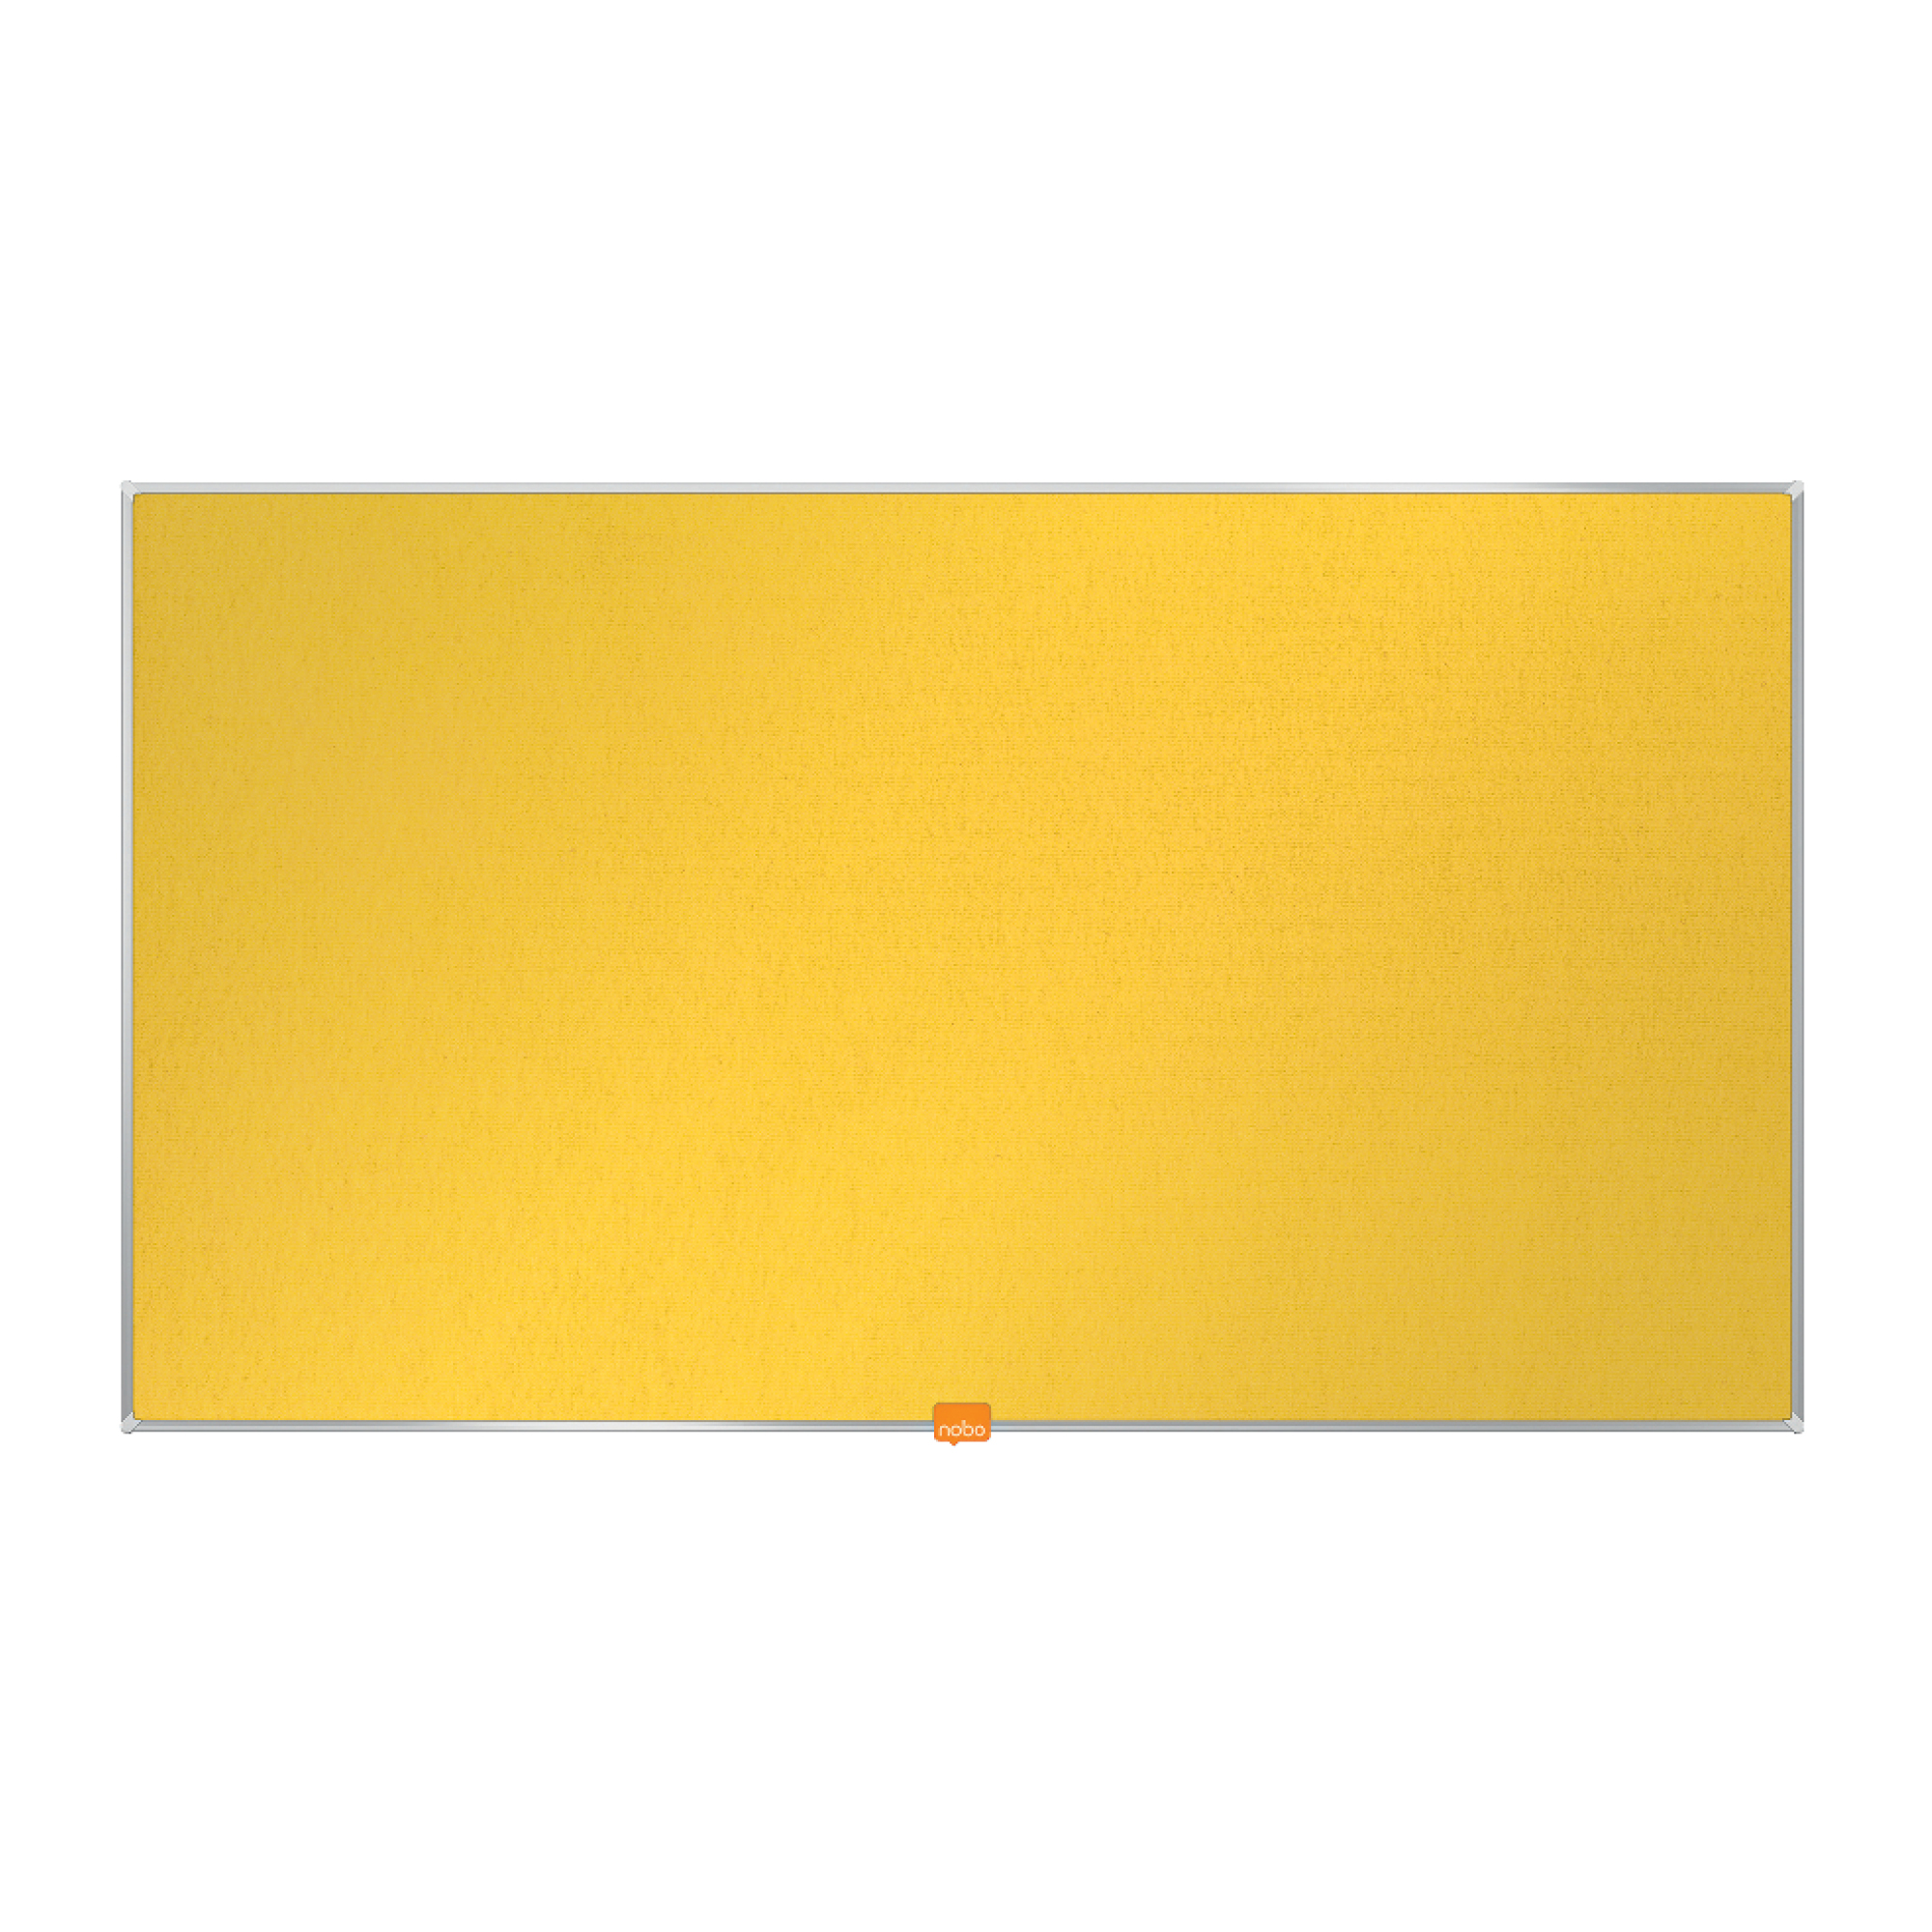 Bulletin boards or accessories Nobo 40 inch Widescreen Felt Board 890x500mm Yellow Ref 1905319